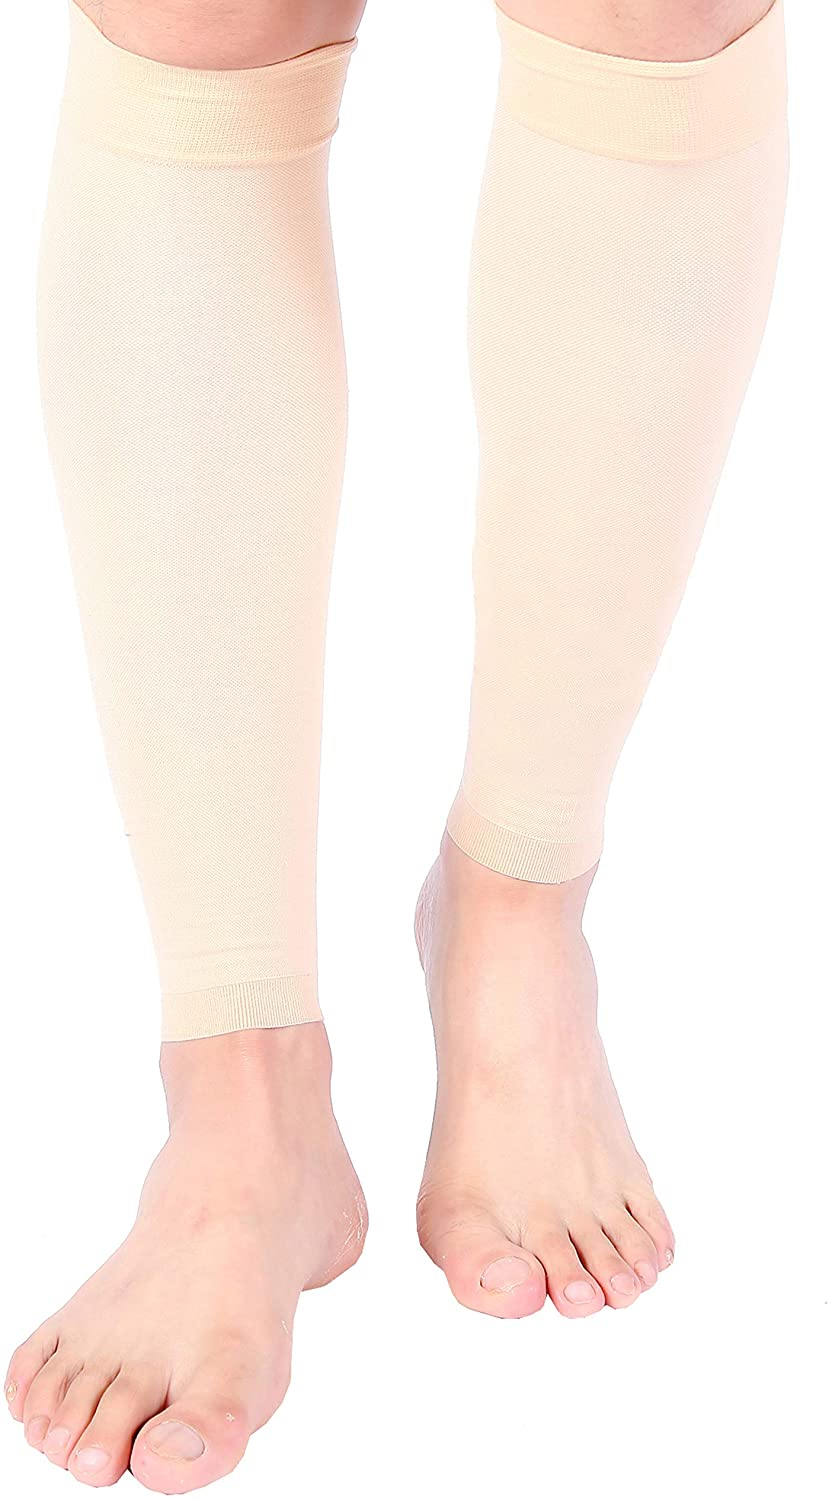 Doc Miller Calf Compression Sleeve 1 Pair 15-20 mmHg Firm Support Graduated for Sports Running Recovery Shin Splints Varicose Veins (2 Pair, Pale Skin, L)